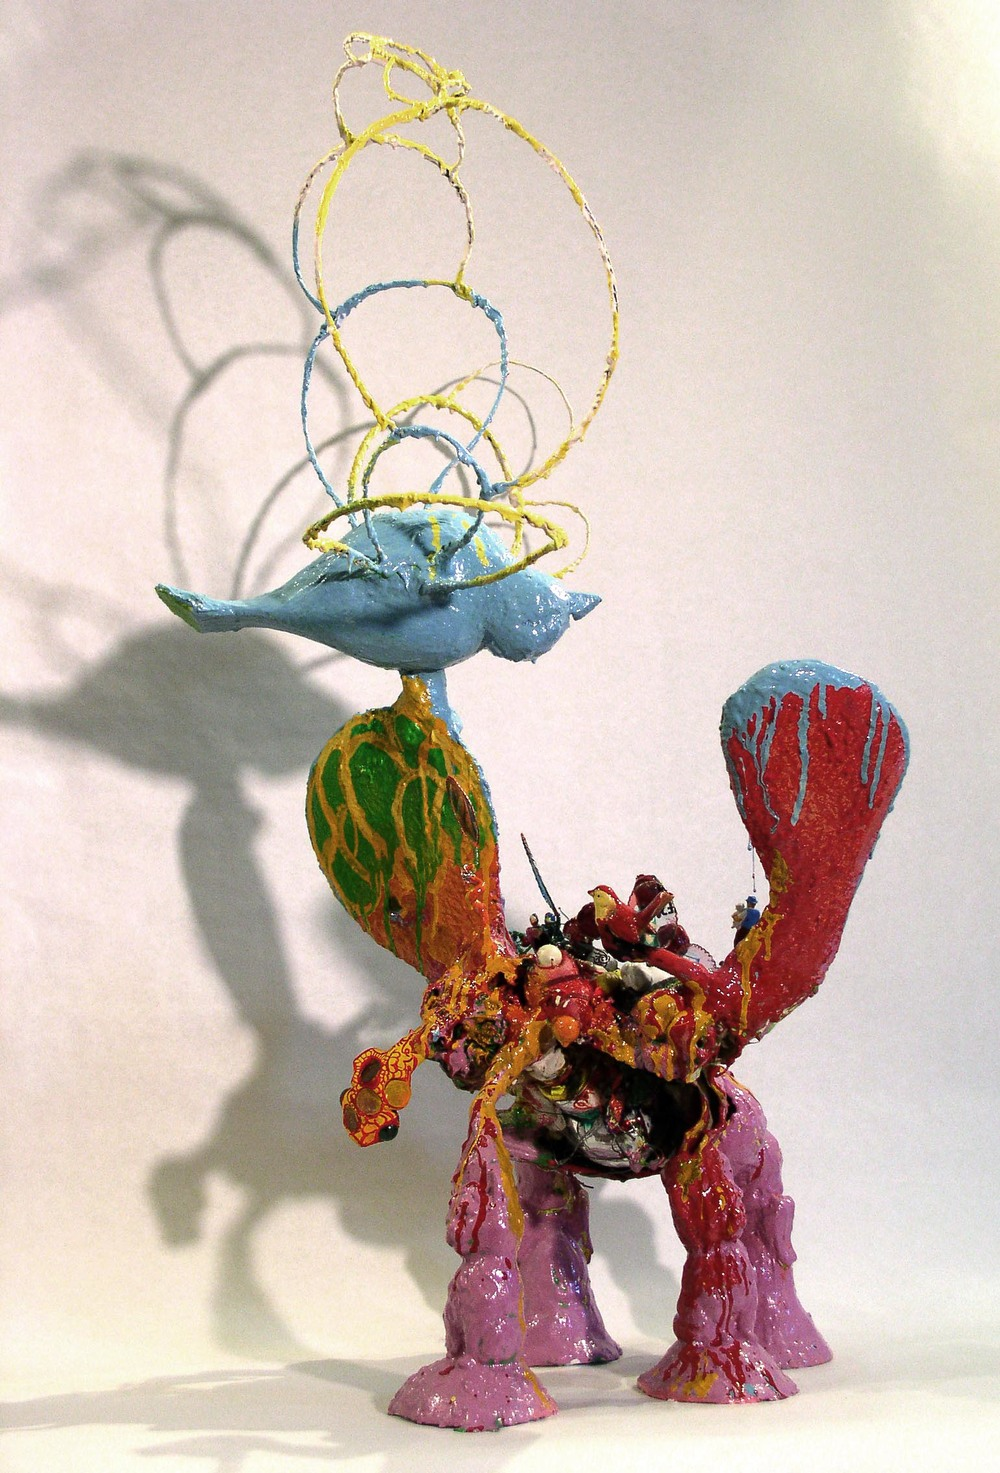 "The Nuclear Option , 2004. Styrofoam, epoxy clay, Aqua Resin, found objects, thread, fabric, wire, enamel paint. Variable Dimensions, about 30"" x 16' x 16""   In the collection of The New York Foundation for the Arts."